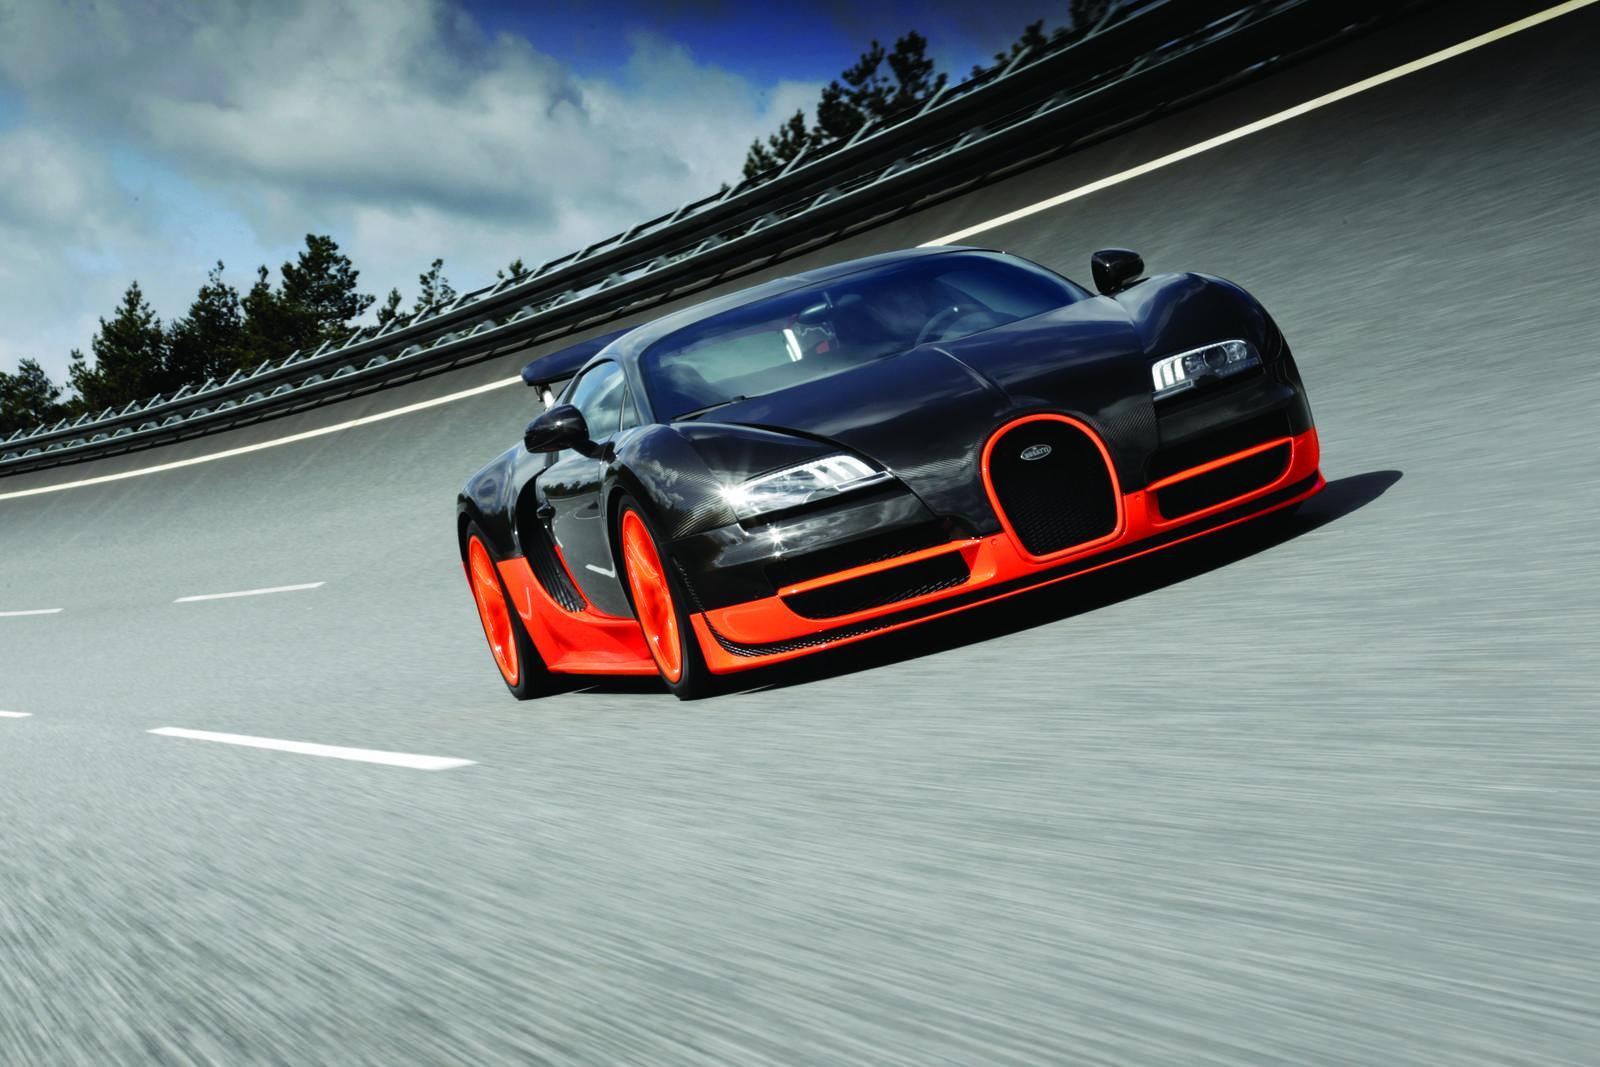 Hd Cars Wallpapers Bugatti Veyron The Fastest Car Ever